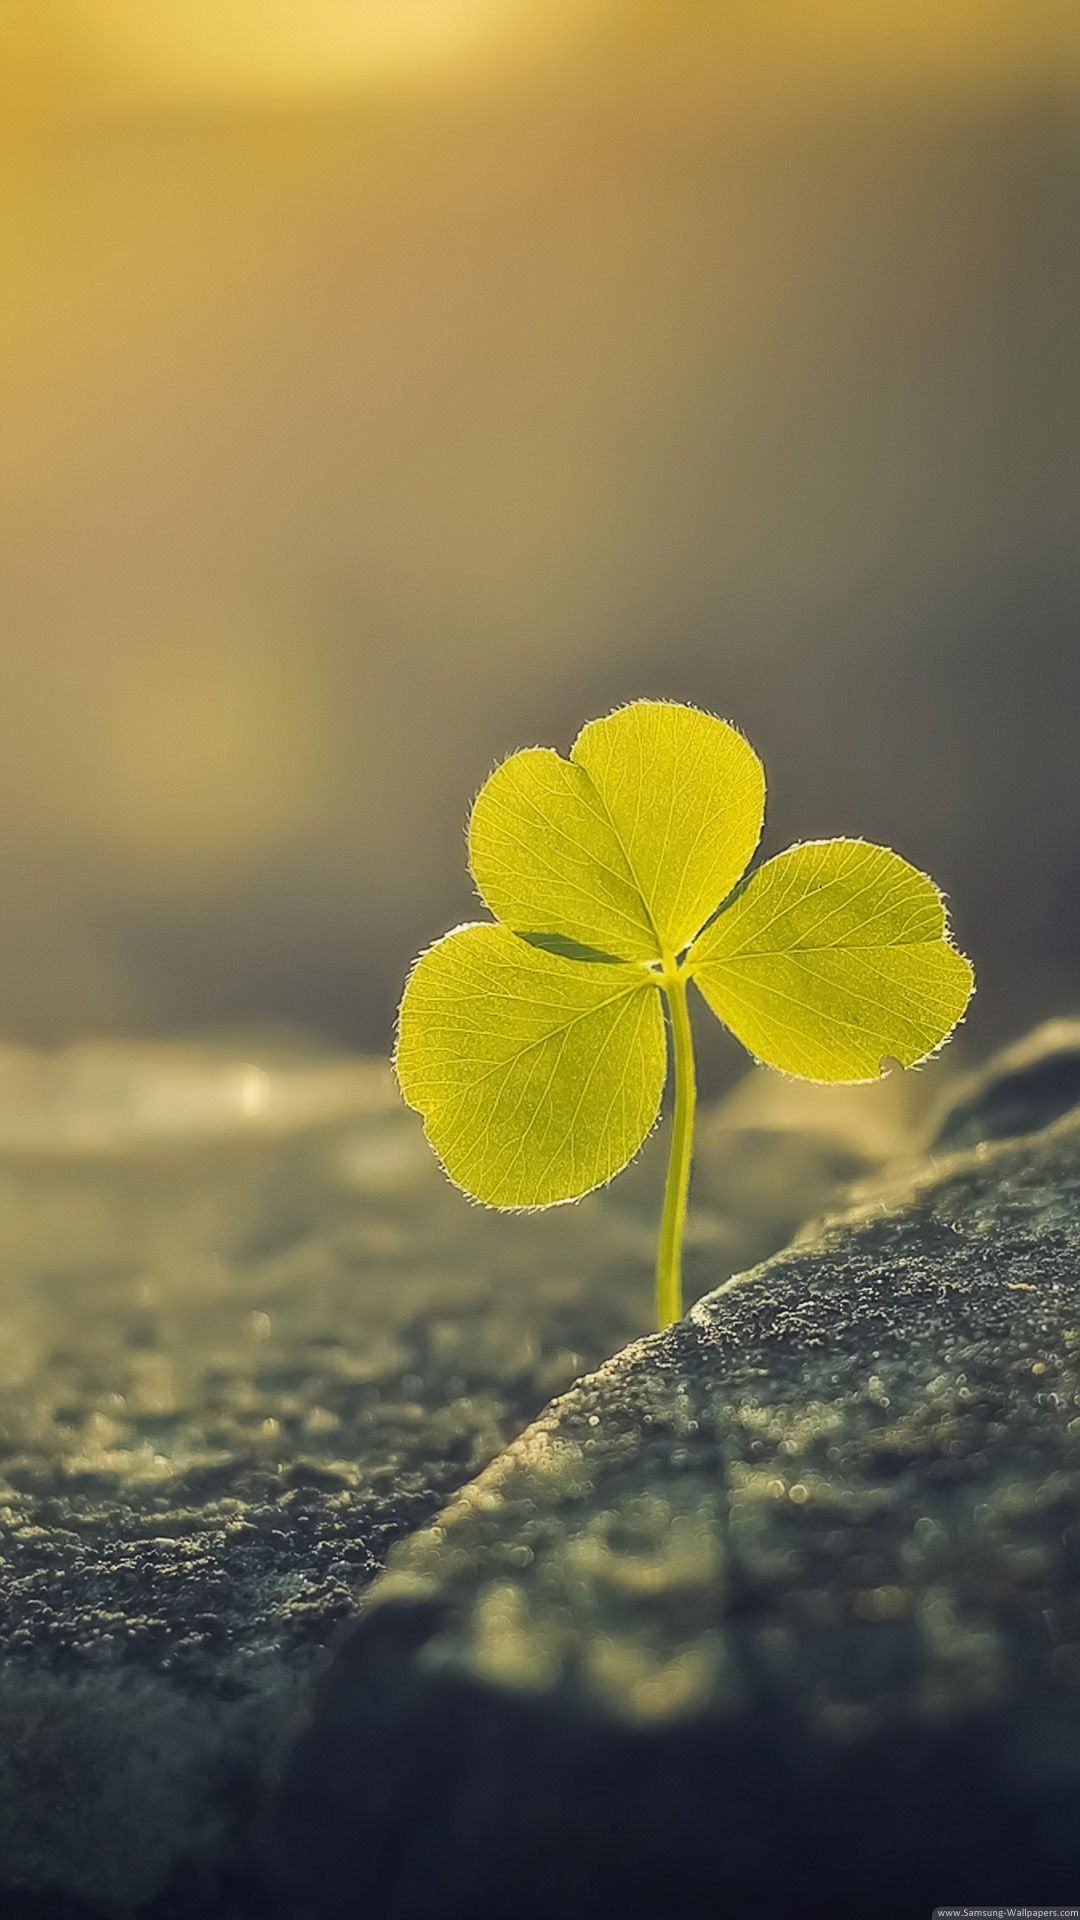 Clover🍀 iPhone HD wallpapers iPhone Wallpaper